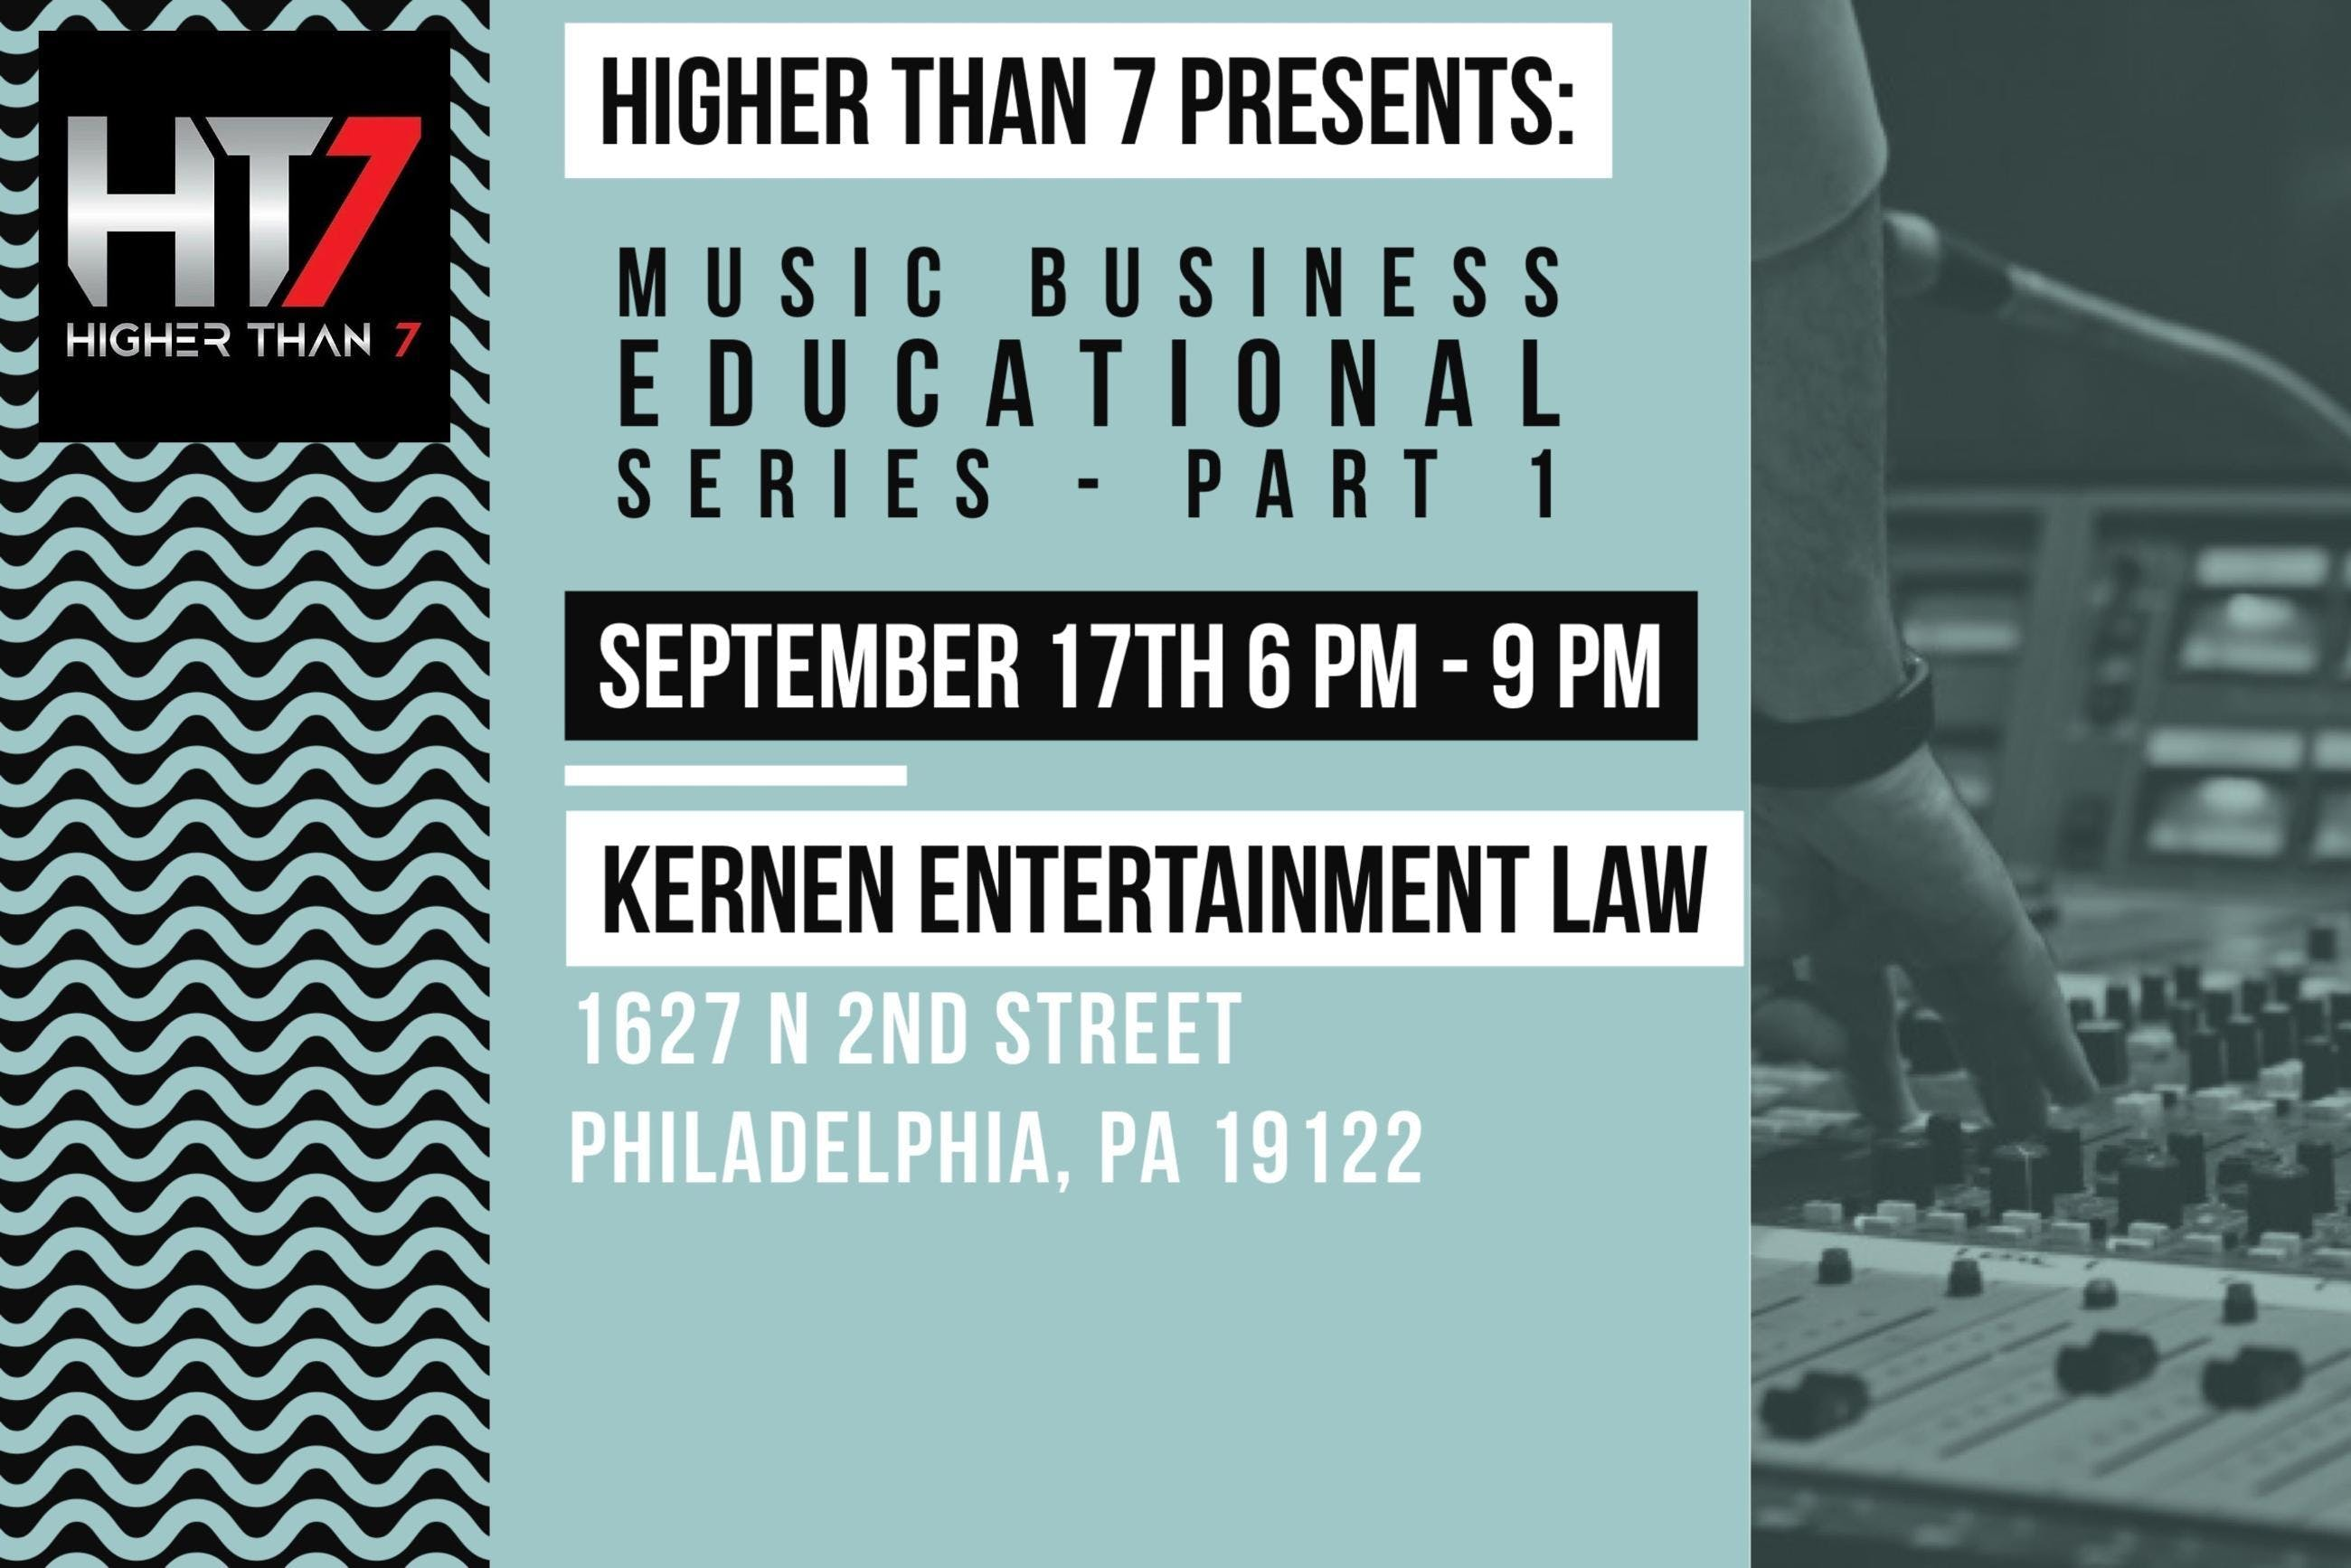 Higher Than 7 Music Business Educational Series - Part 1